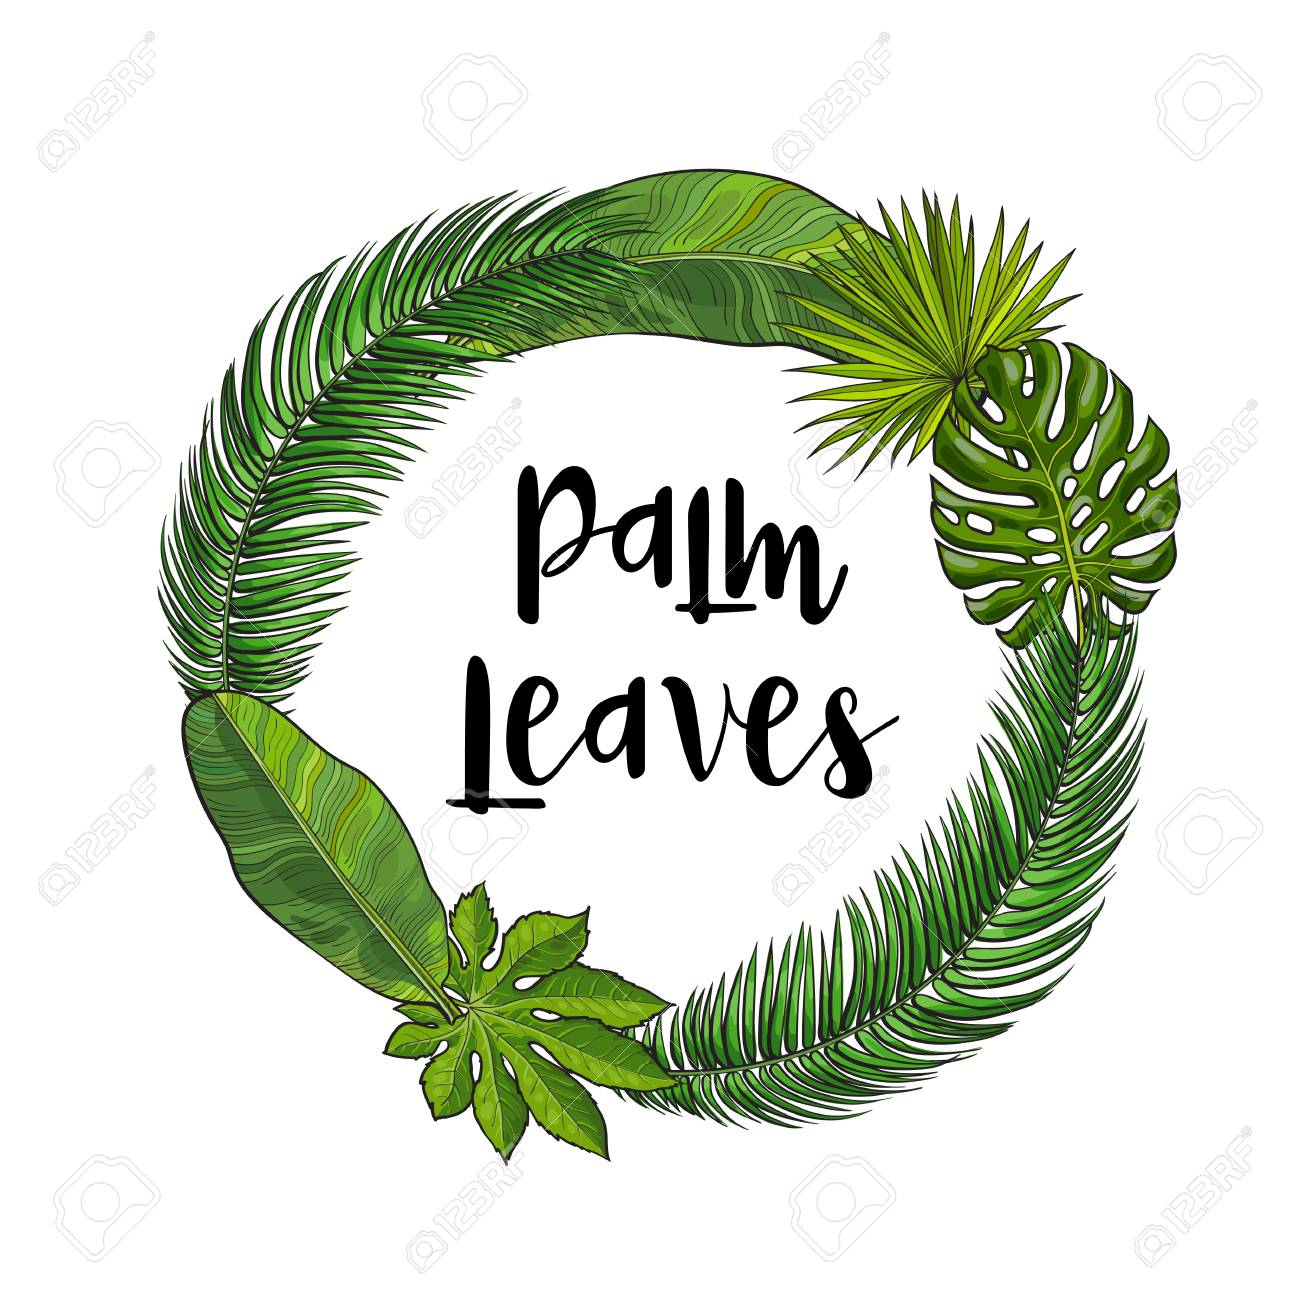 Round Frame Of Tropical Palm Leaves With Place For Text Sketch Royalty Free Cliparts Vectors And Stock Illustration Image 72175611 Illustrated palm tree leaves silhouettes. round frame of tropical palm leaves with place for text sketch